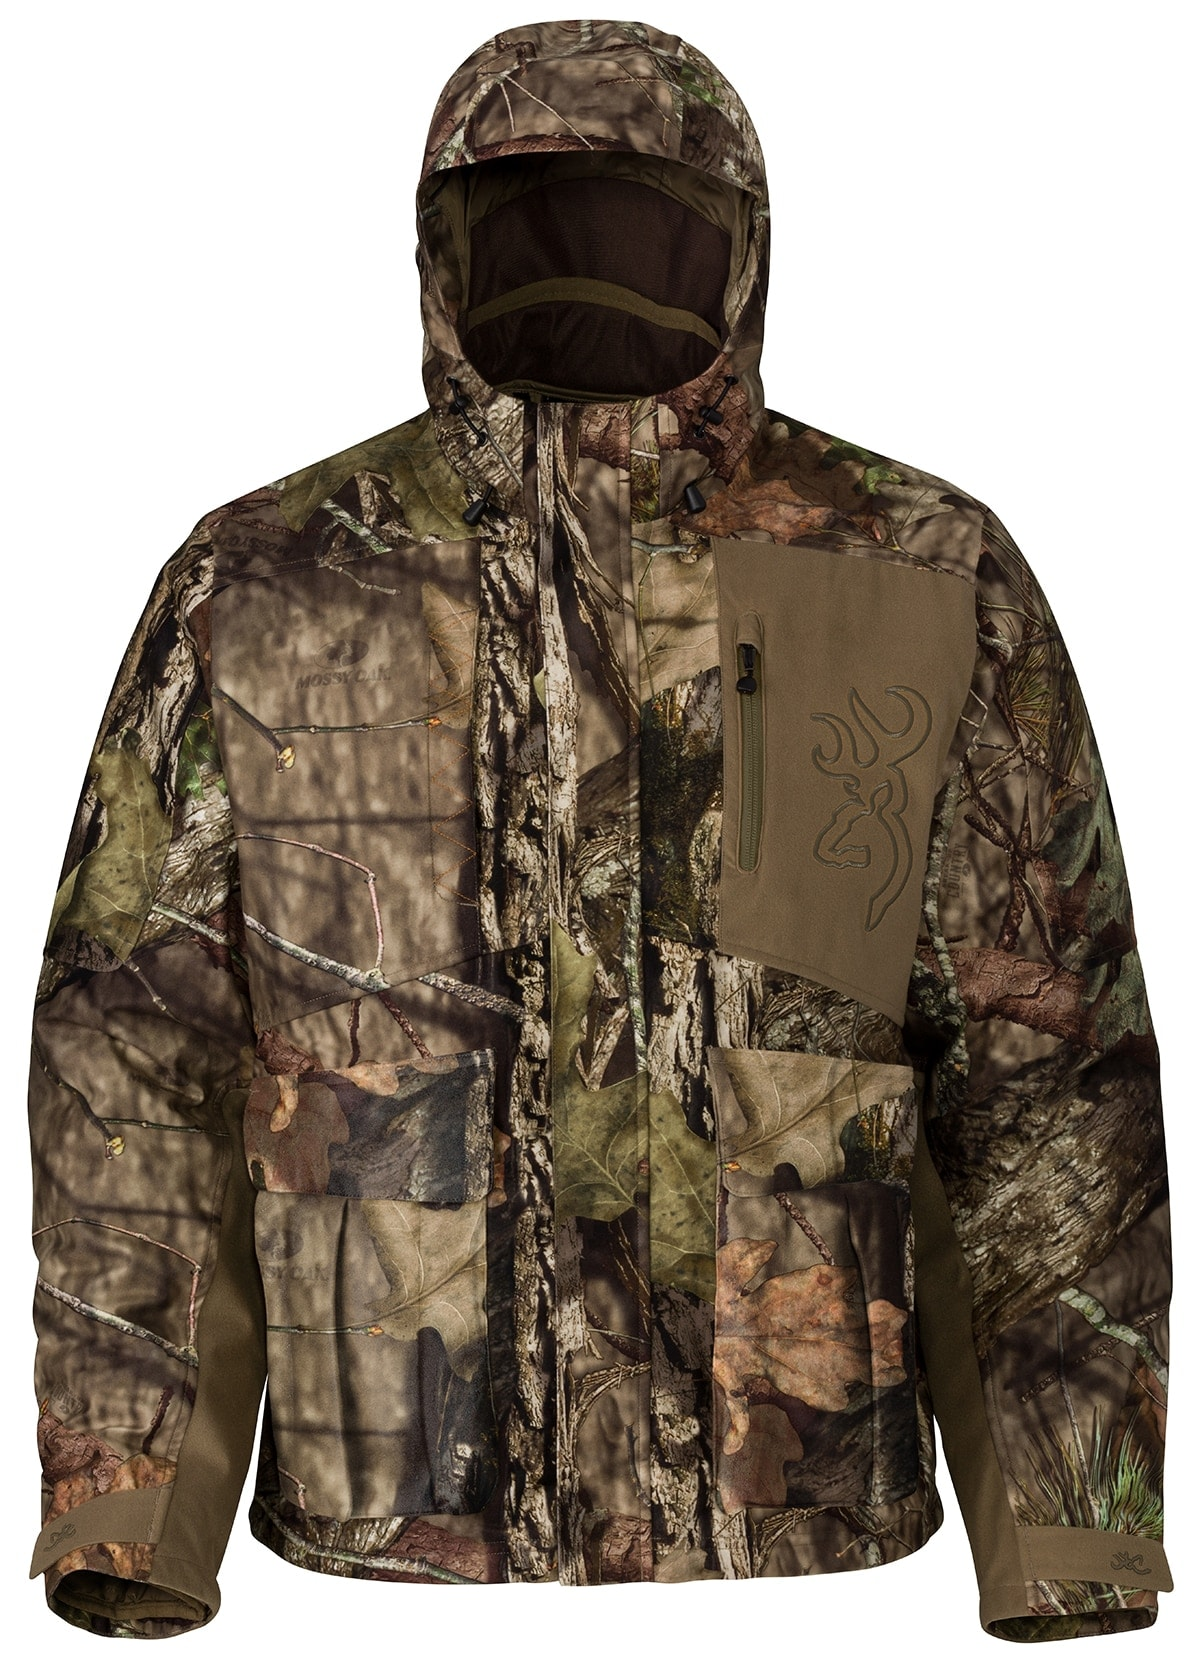 The Hell's Canyon BTU Parka for men by Browning. (Photo: Browning)